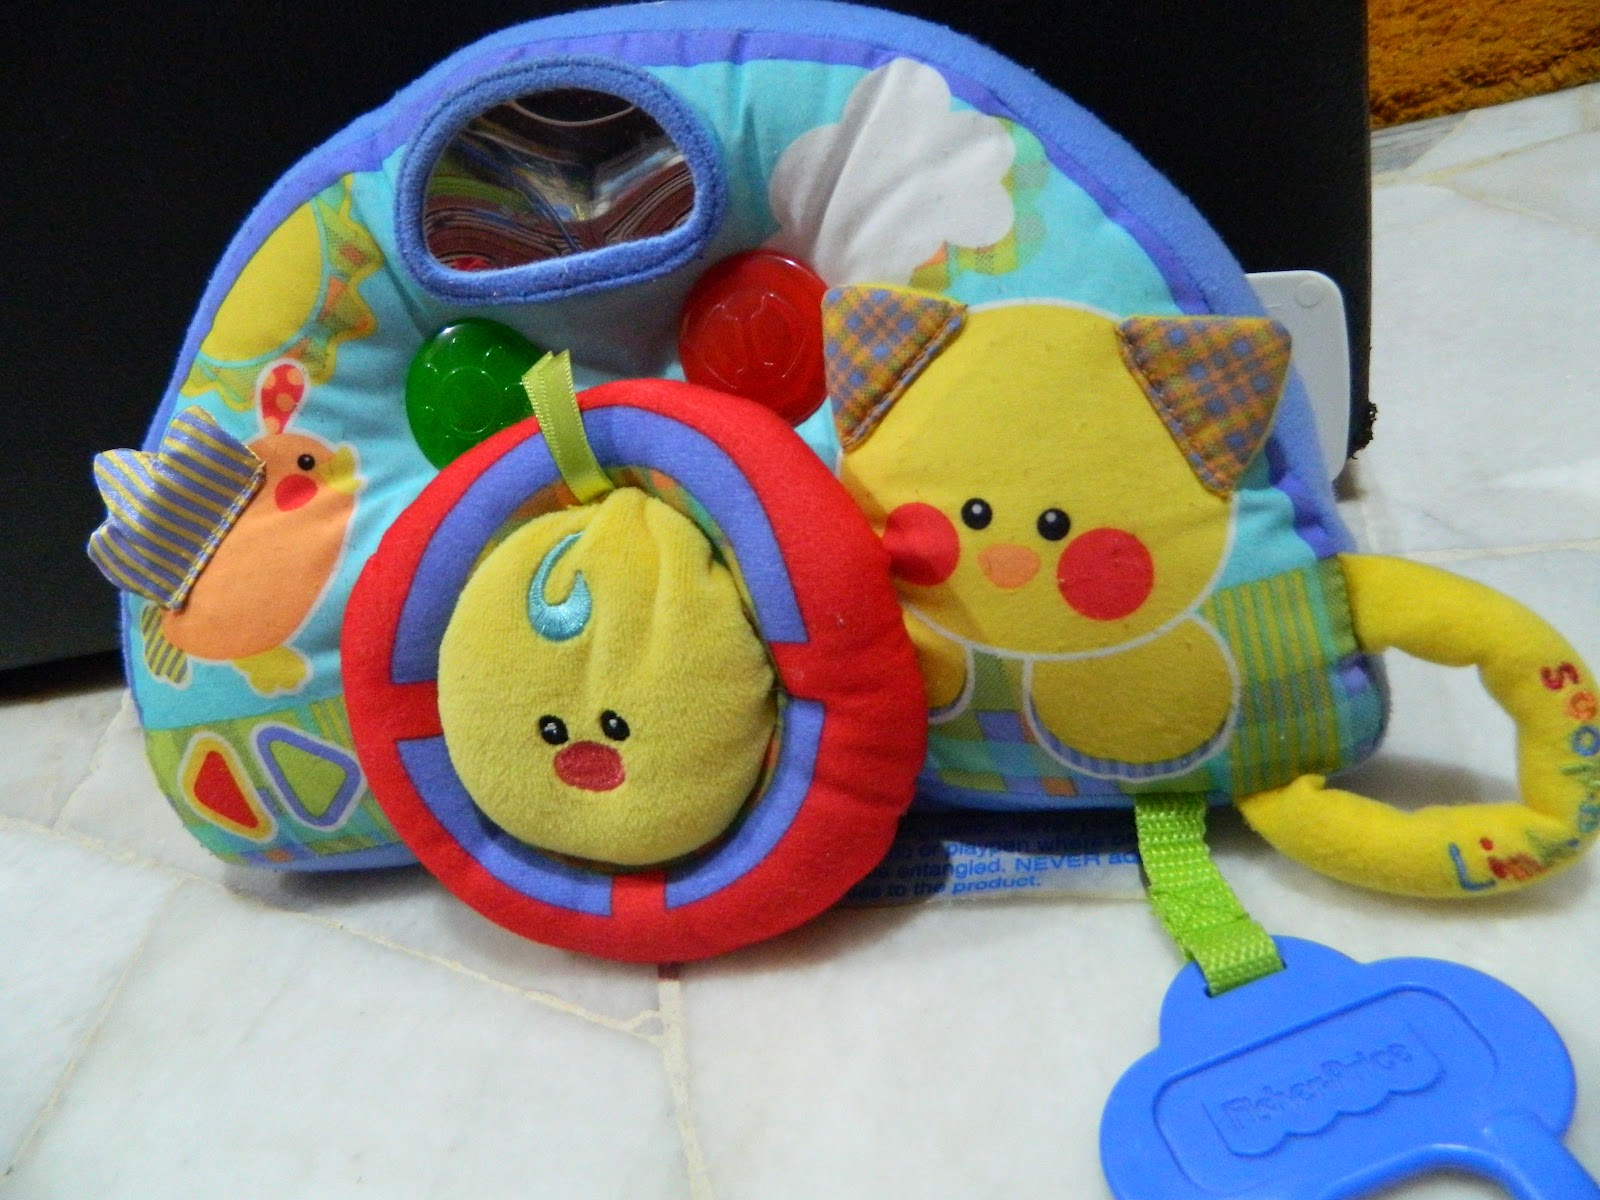 Car Seat Toy Fisher Price : Save on toys fisher price car seat dashboard link a doos